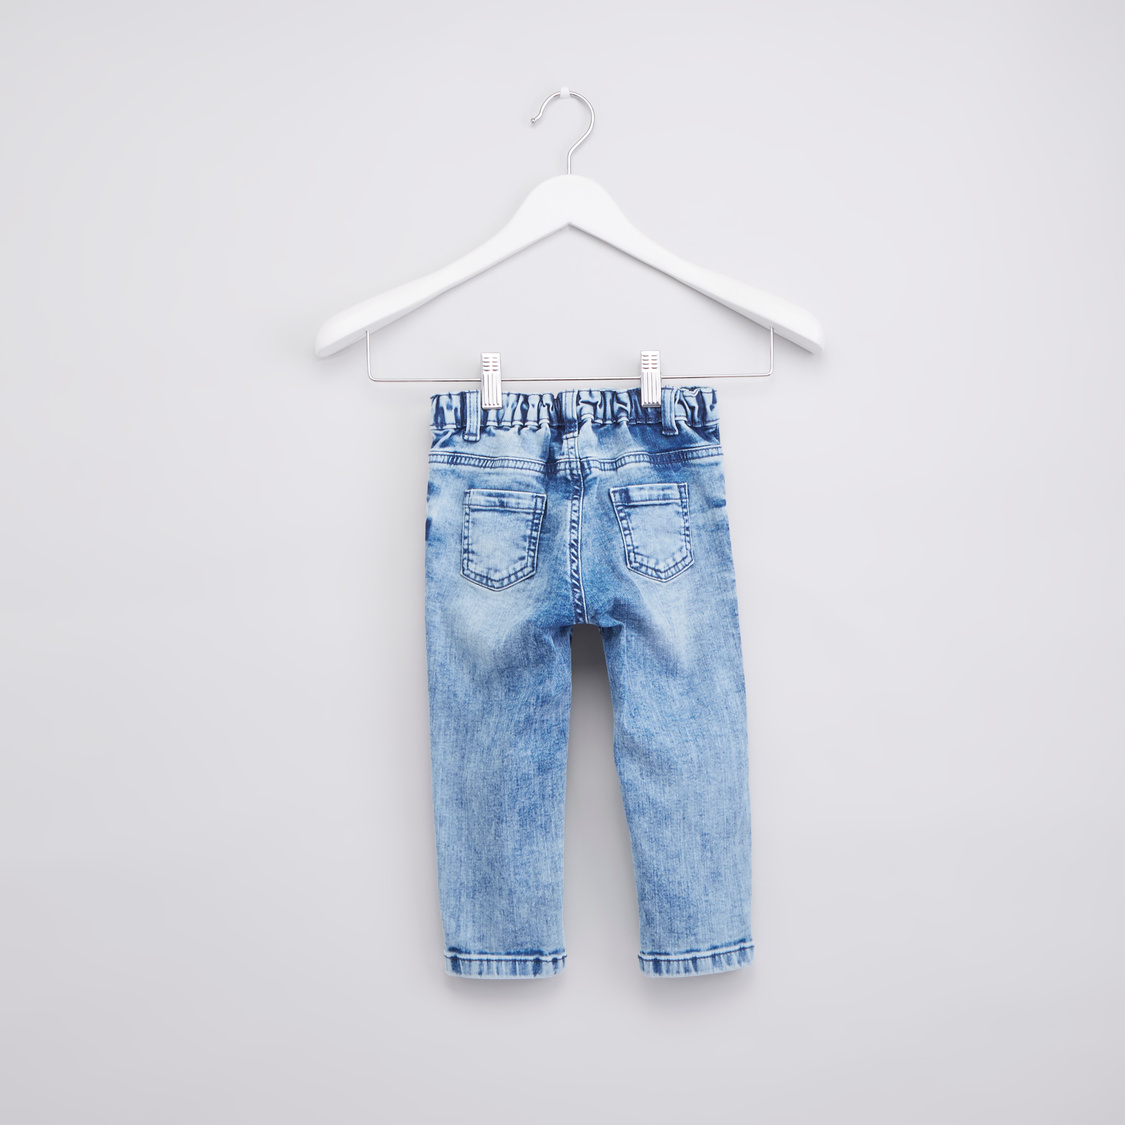 Embroidered Full Length Jeans with Pocket Detail and Belt Loops